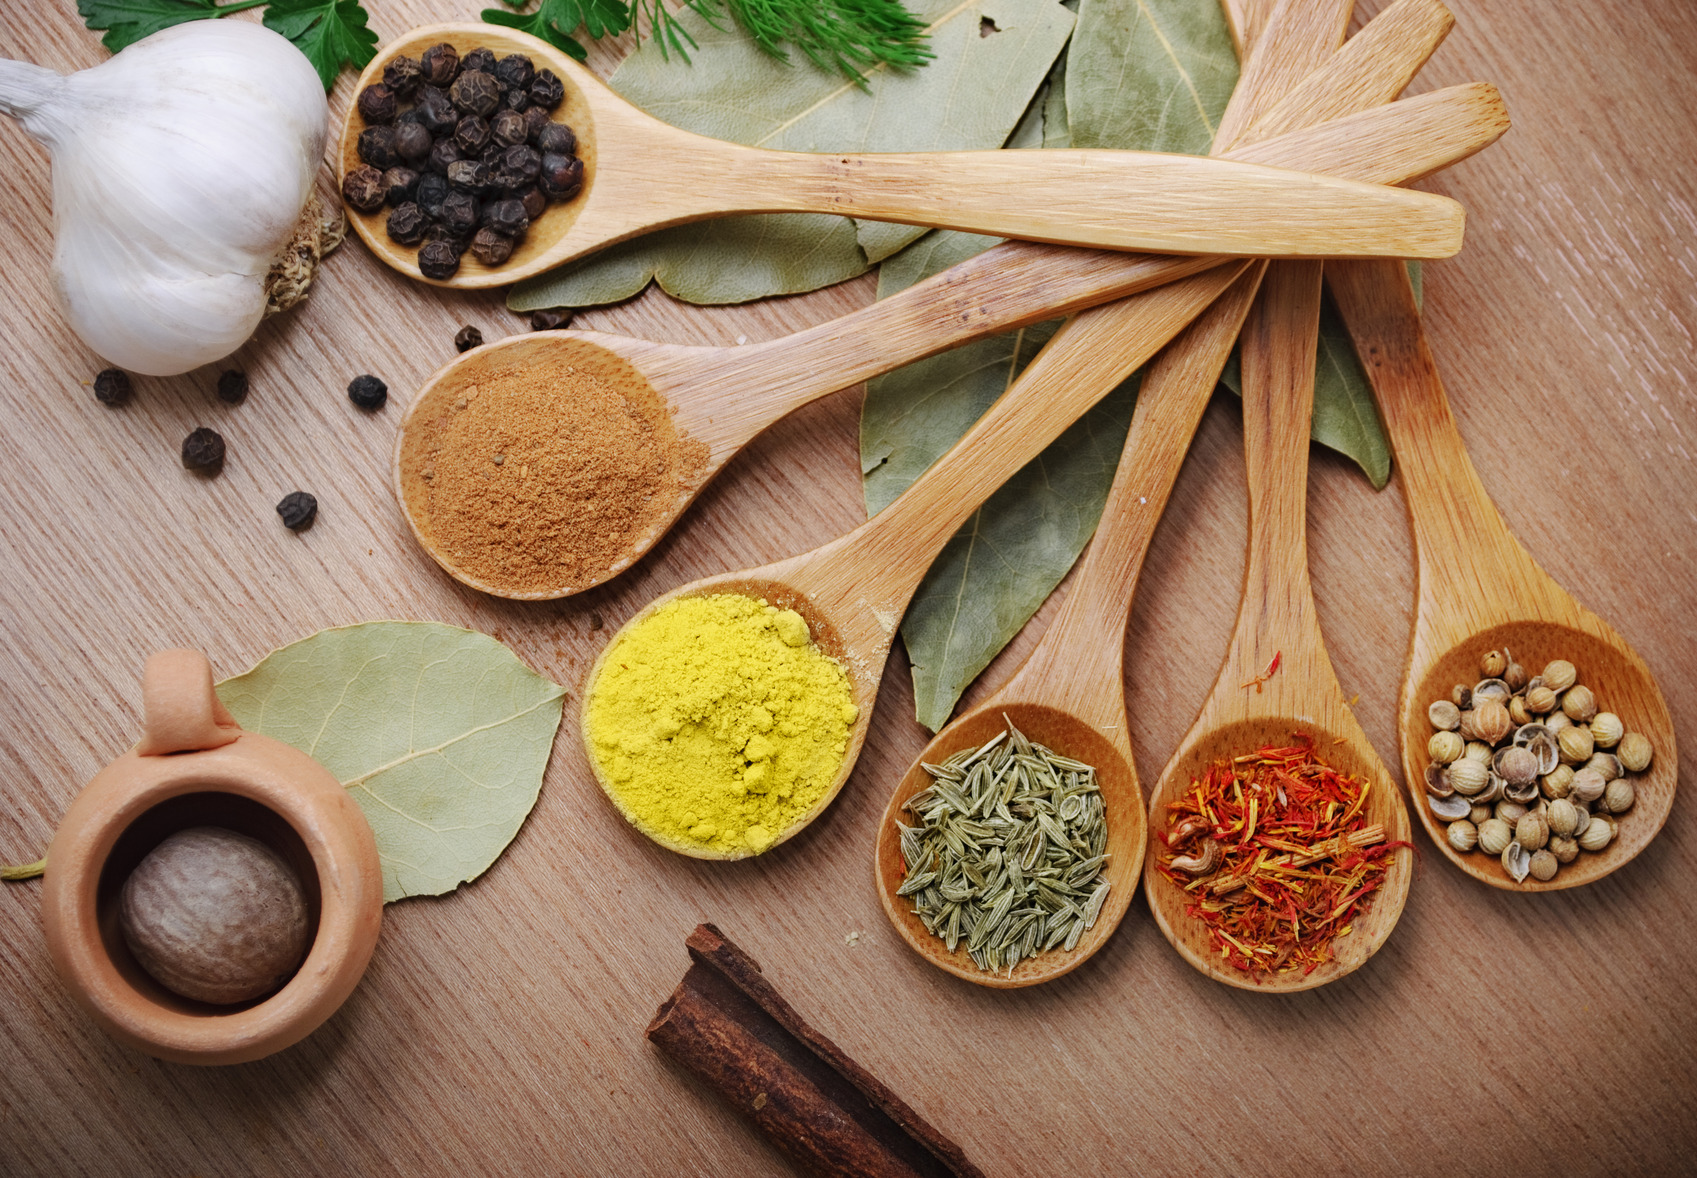 photodune 614969 spices m - Top Indian spices to cook delicious meals